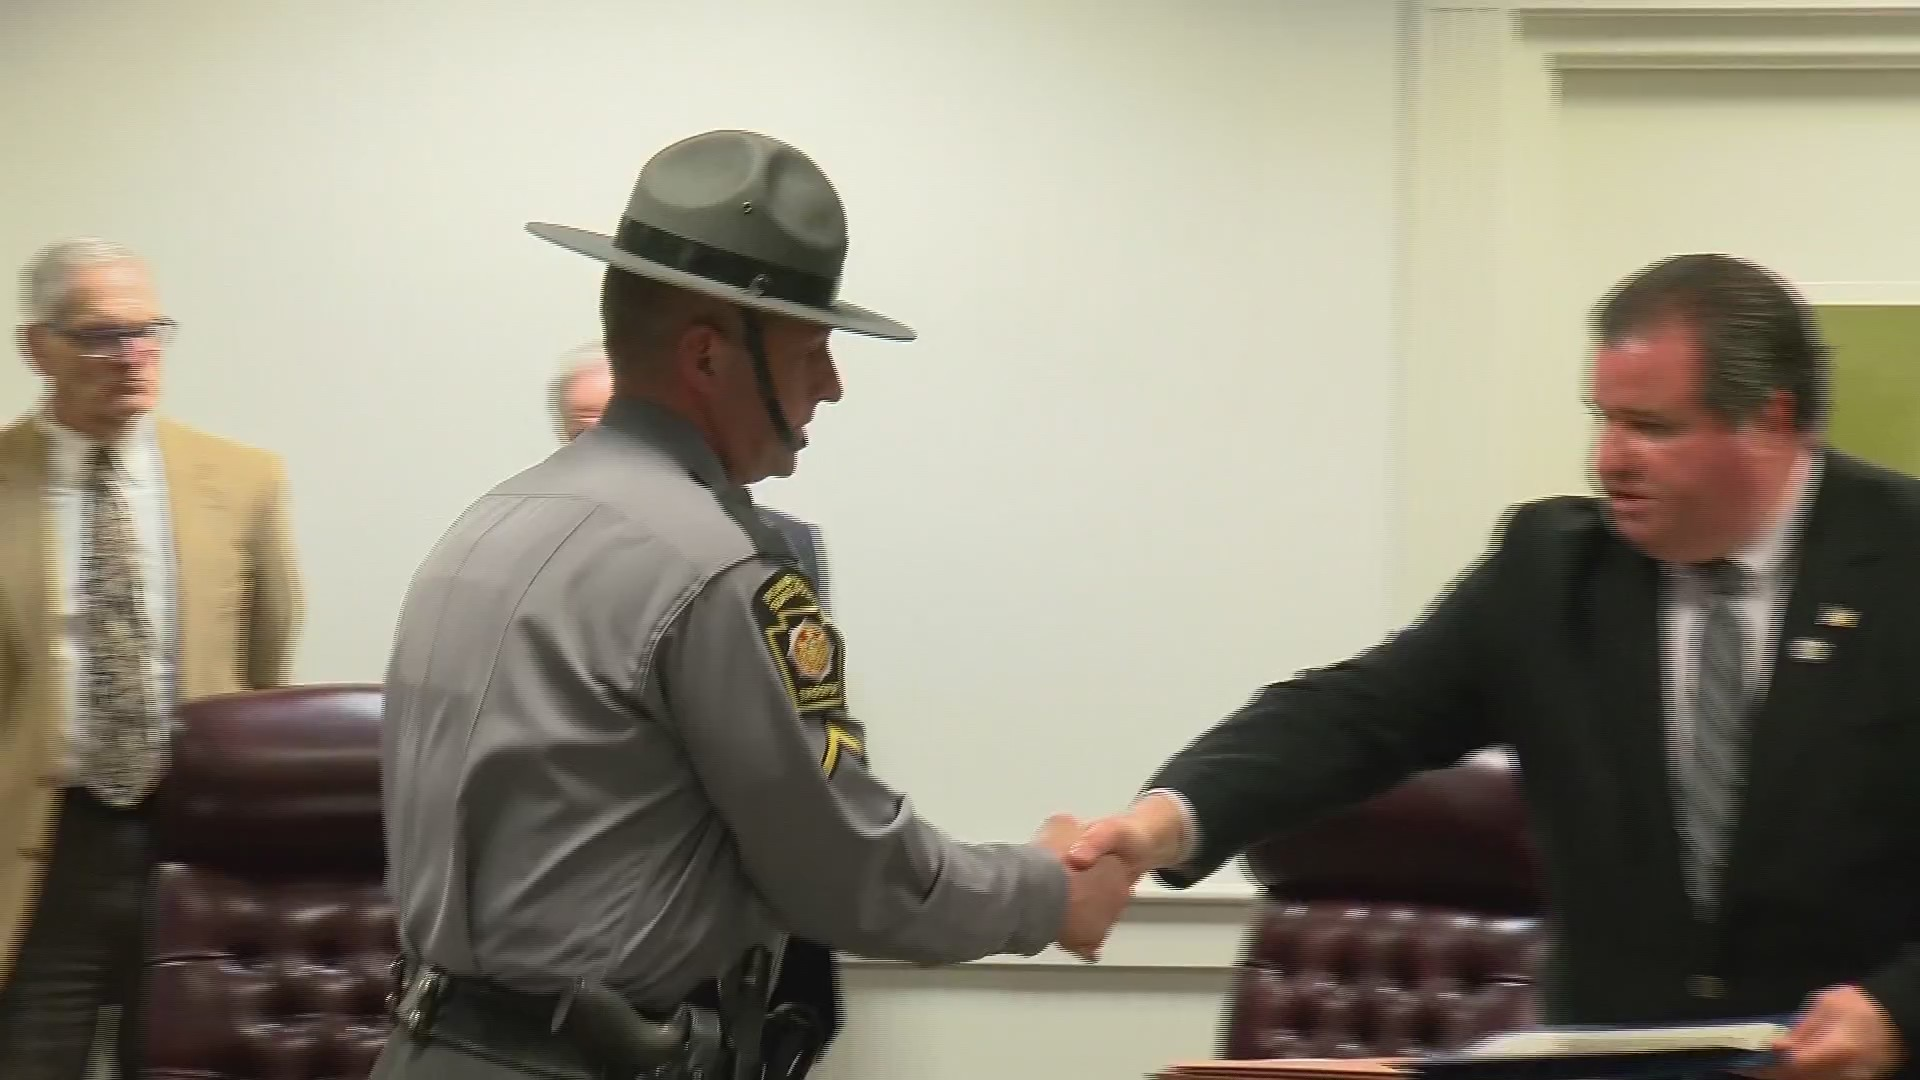 First_responders_honored_for_rescuing_tr_0_20190312032644